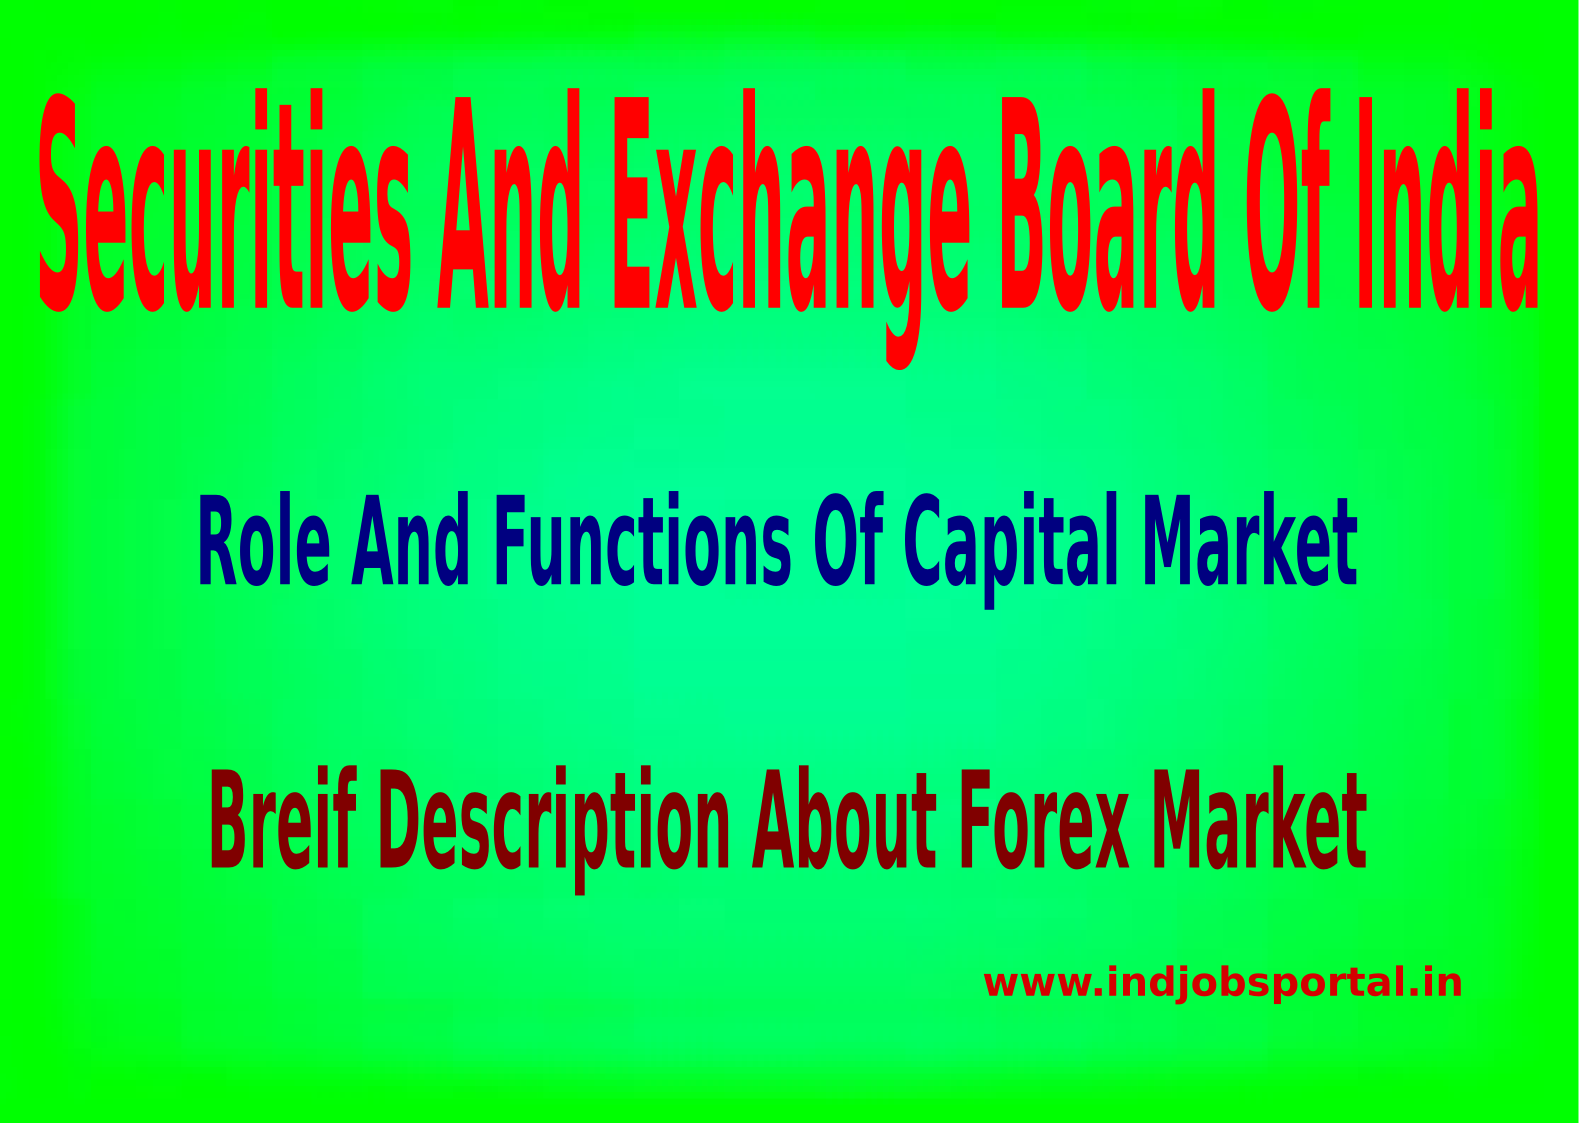 Role And Functions Of Capital Market, Securities And Exchange Board Of India And Forex Market